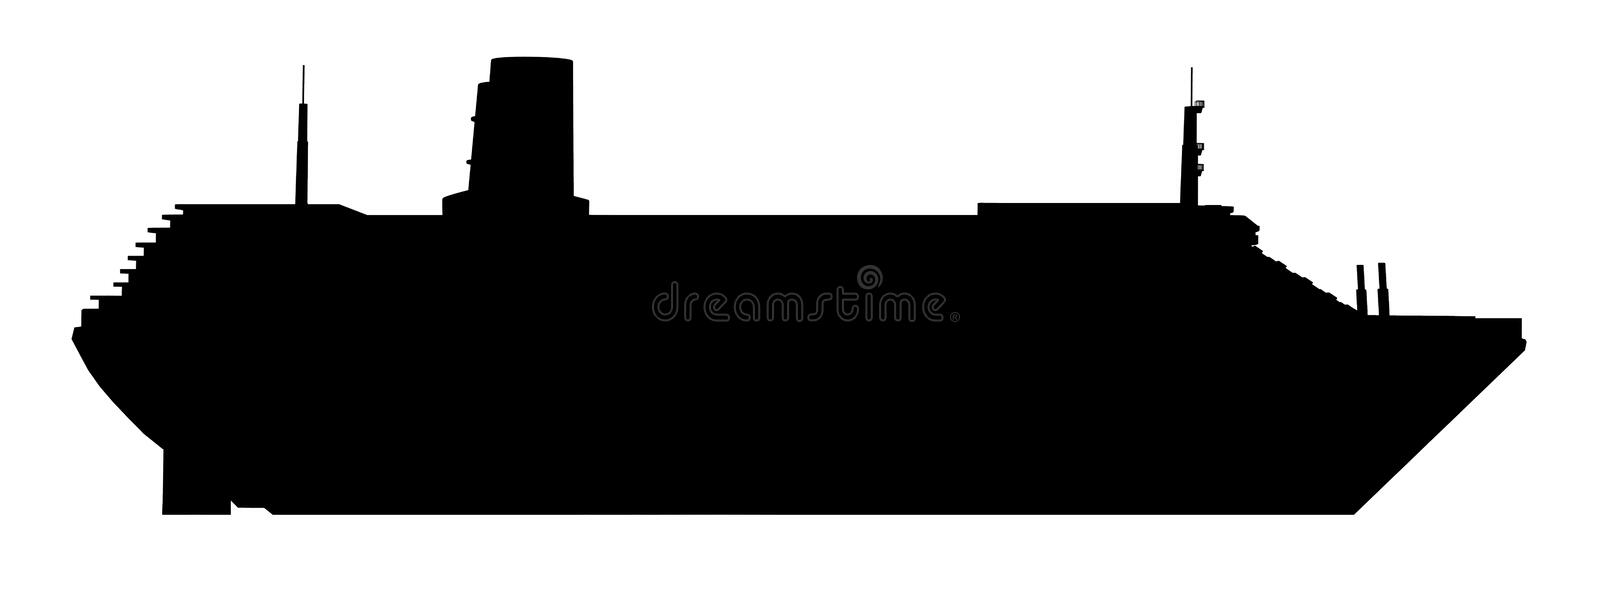 Silhouette of a cruise ship. Computer generated 2D illustration with the silhouette of a cruise ship royalty free illustration